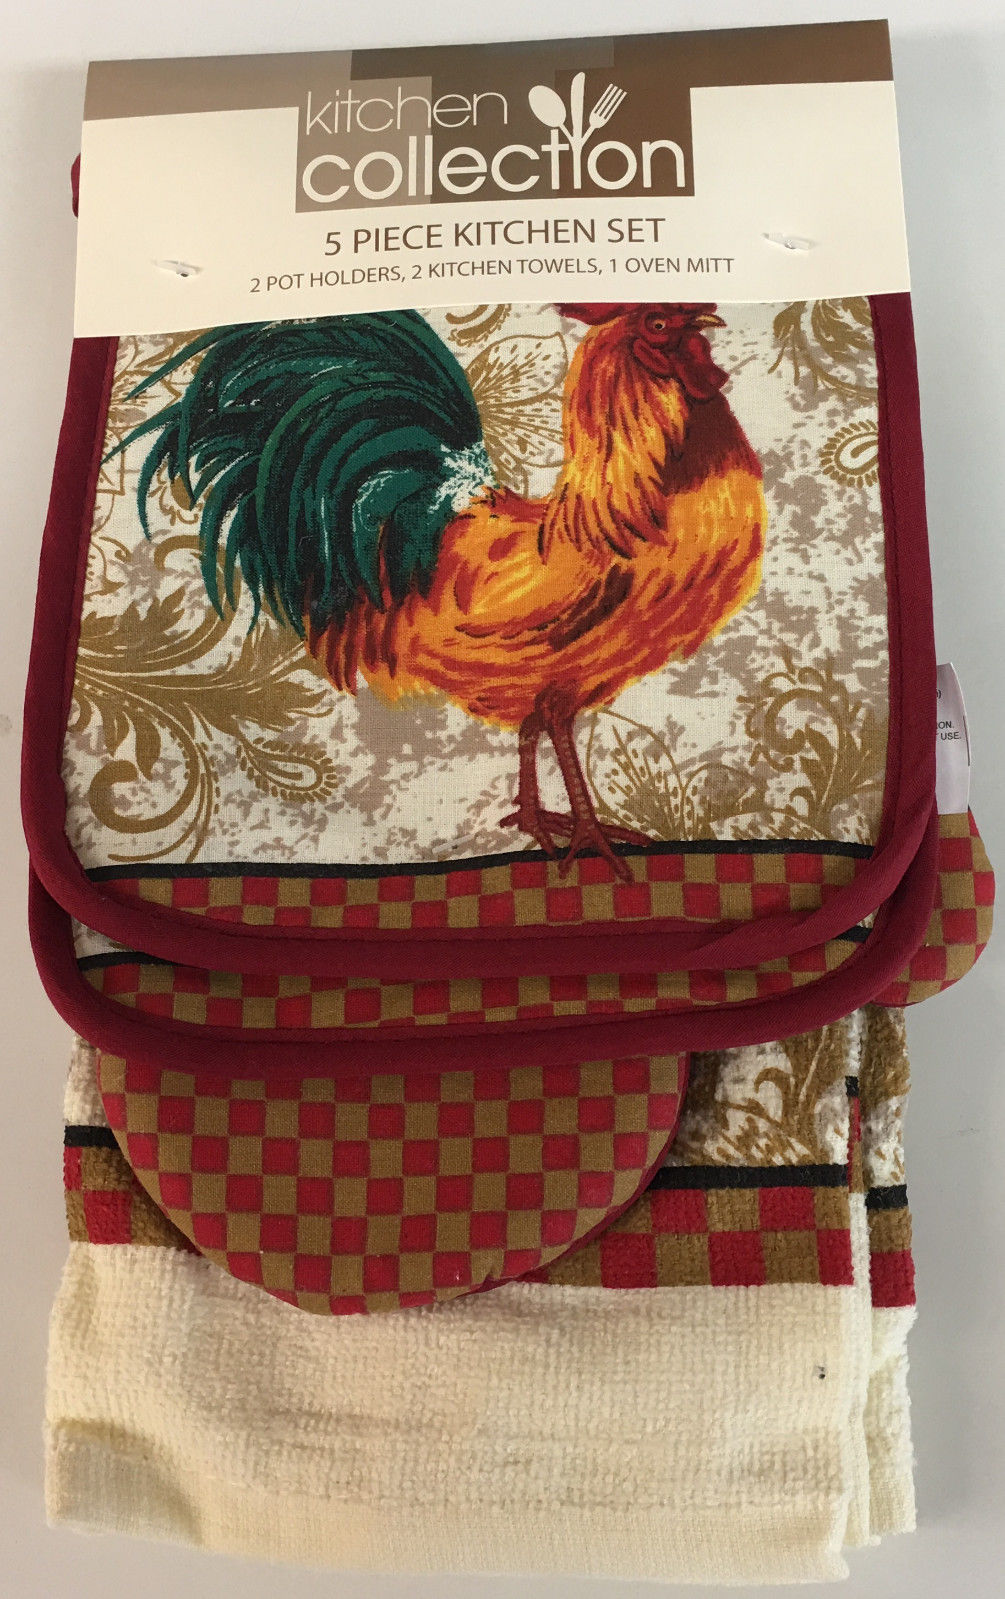 5 Piece Set Includes 2 Kitchen Towels, 2 Pot Holders and 1 Oven Mitt, Rooster by Popular Bath